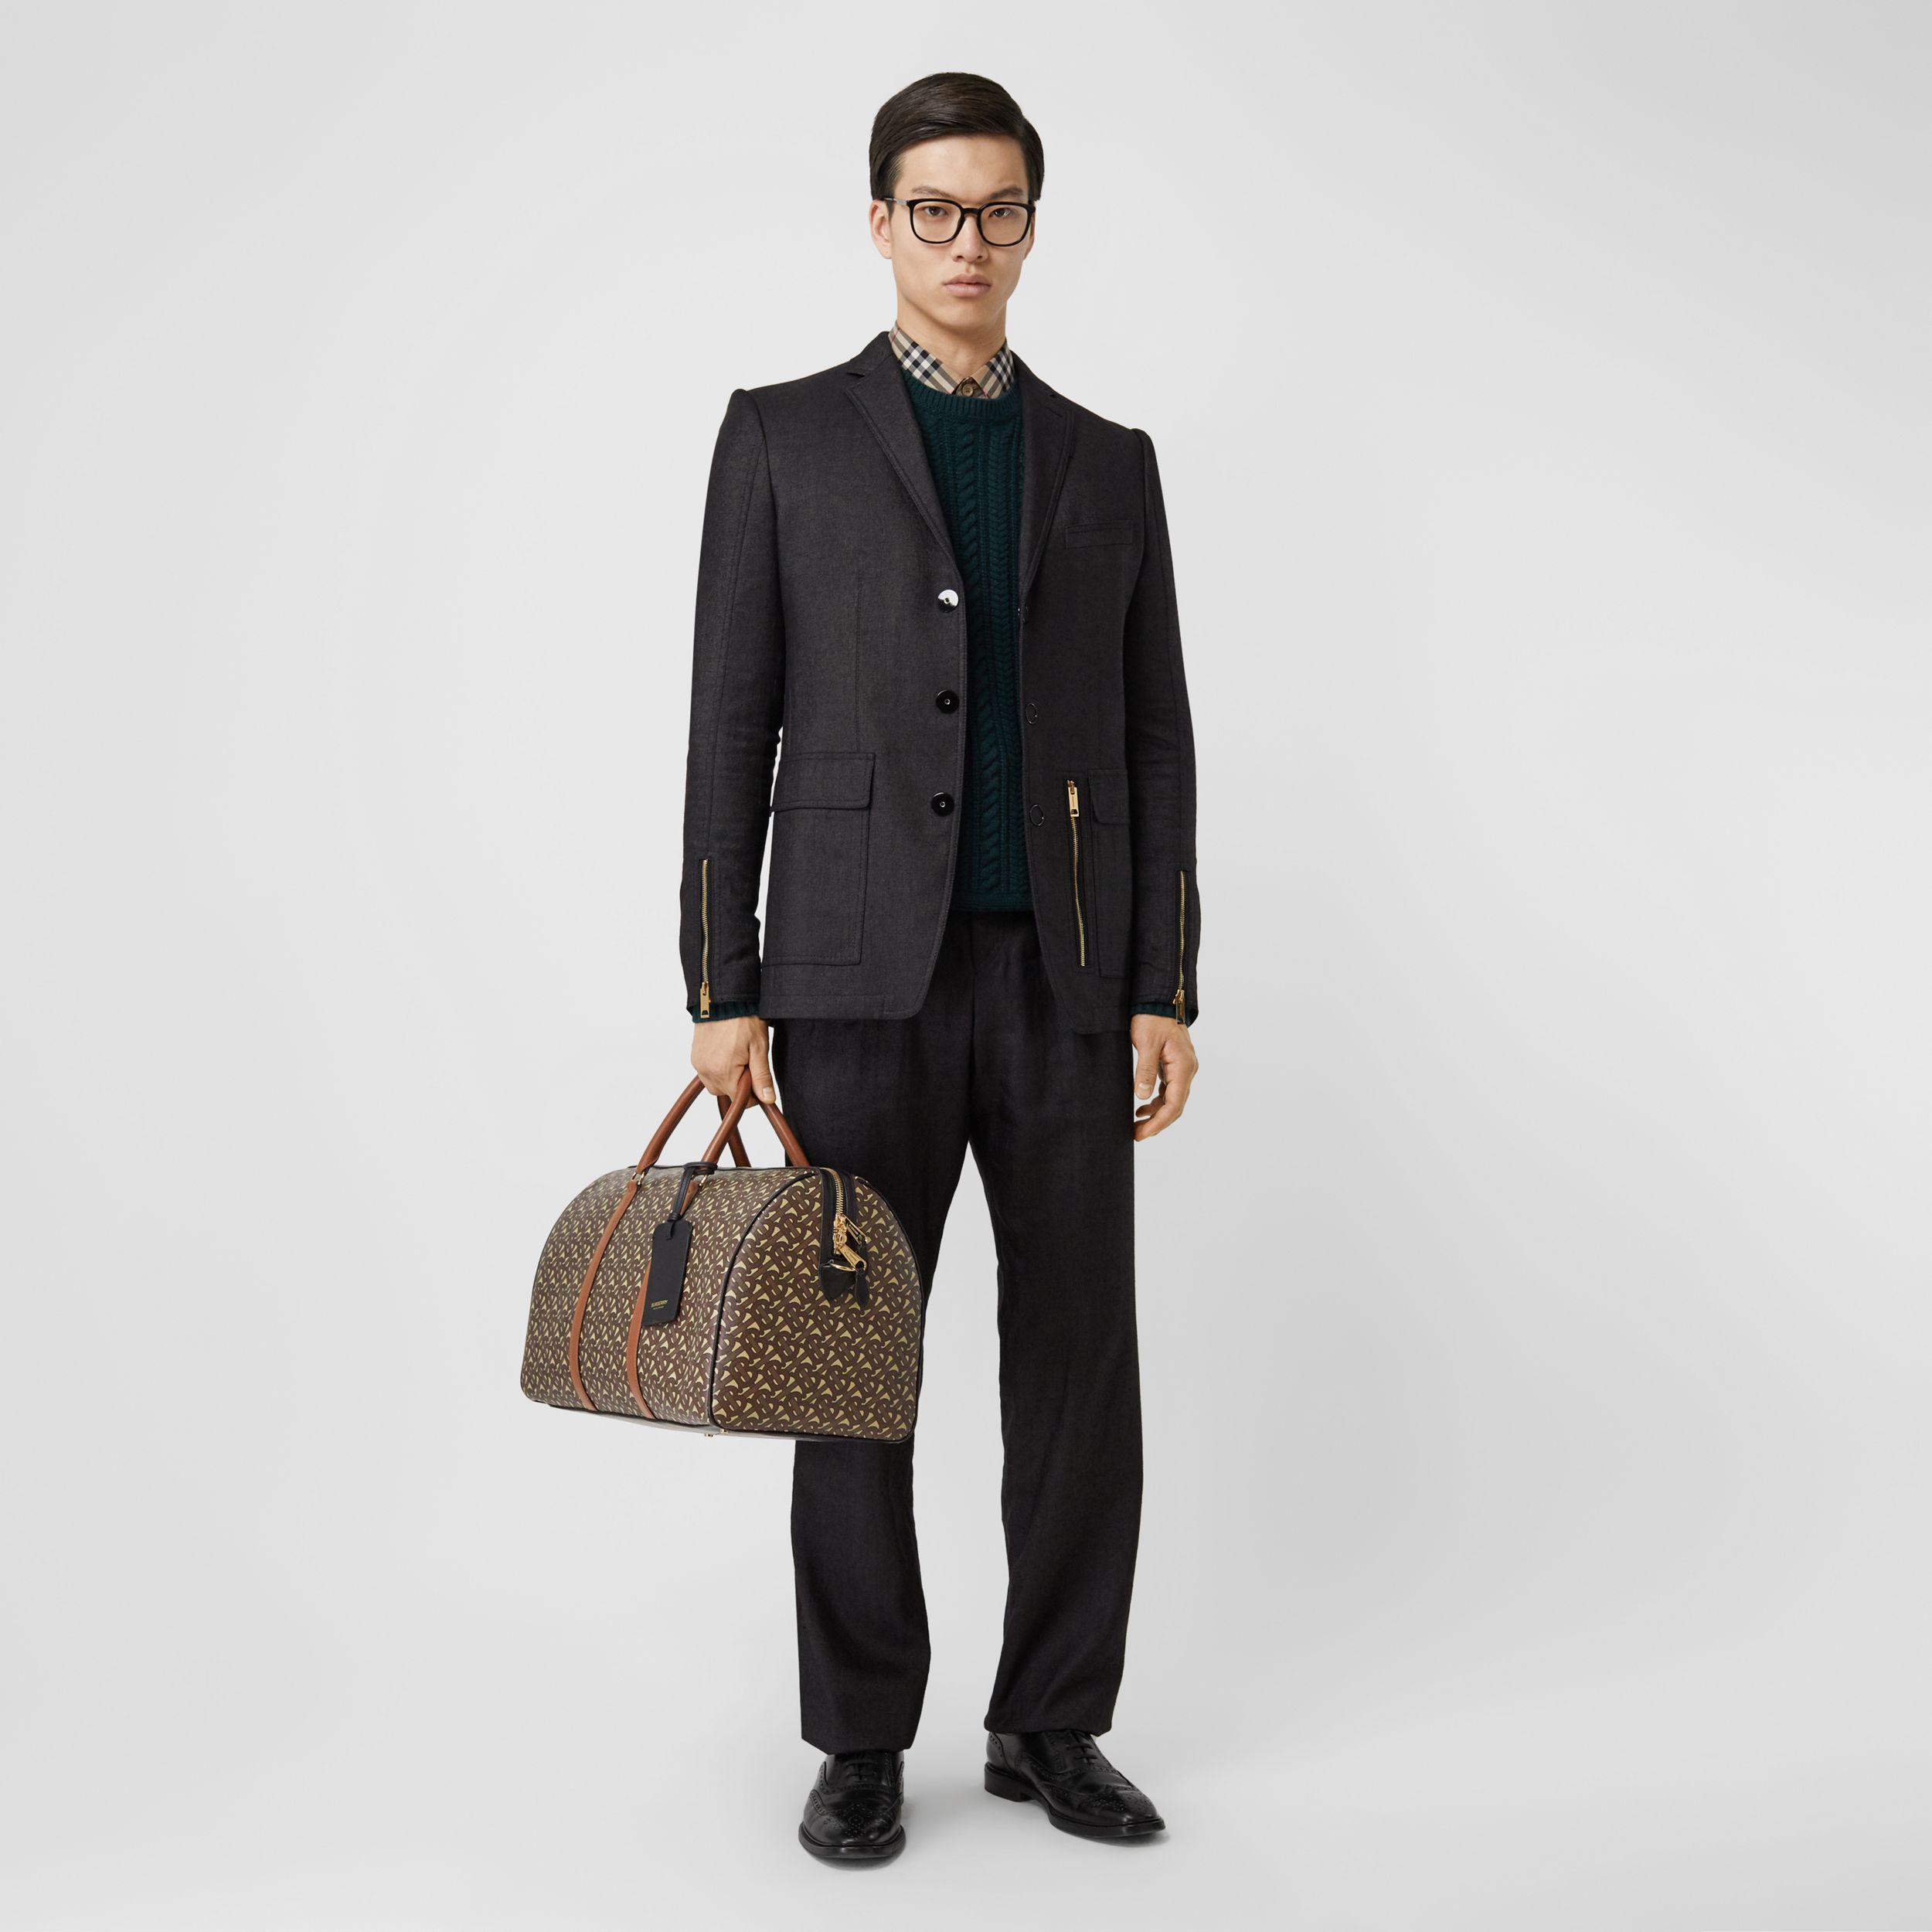 Monogram Print E-canvas and Leather Holdall in Bridle Brown - Men | Burberry United States - 3